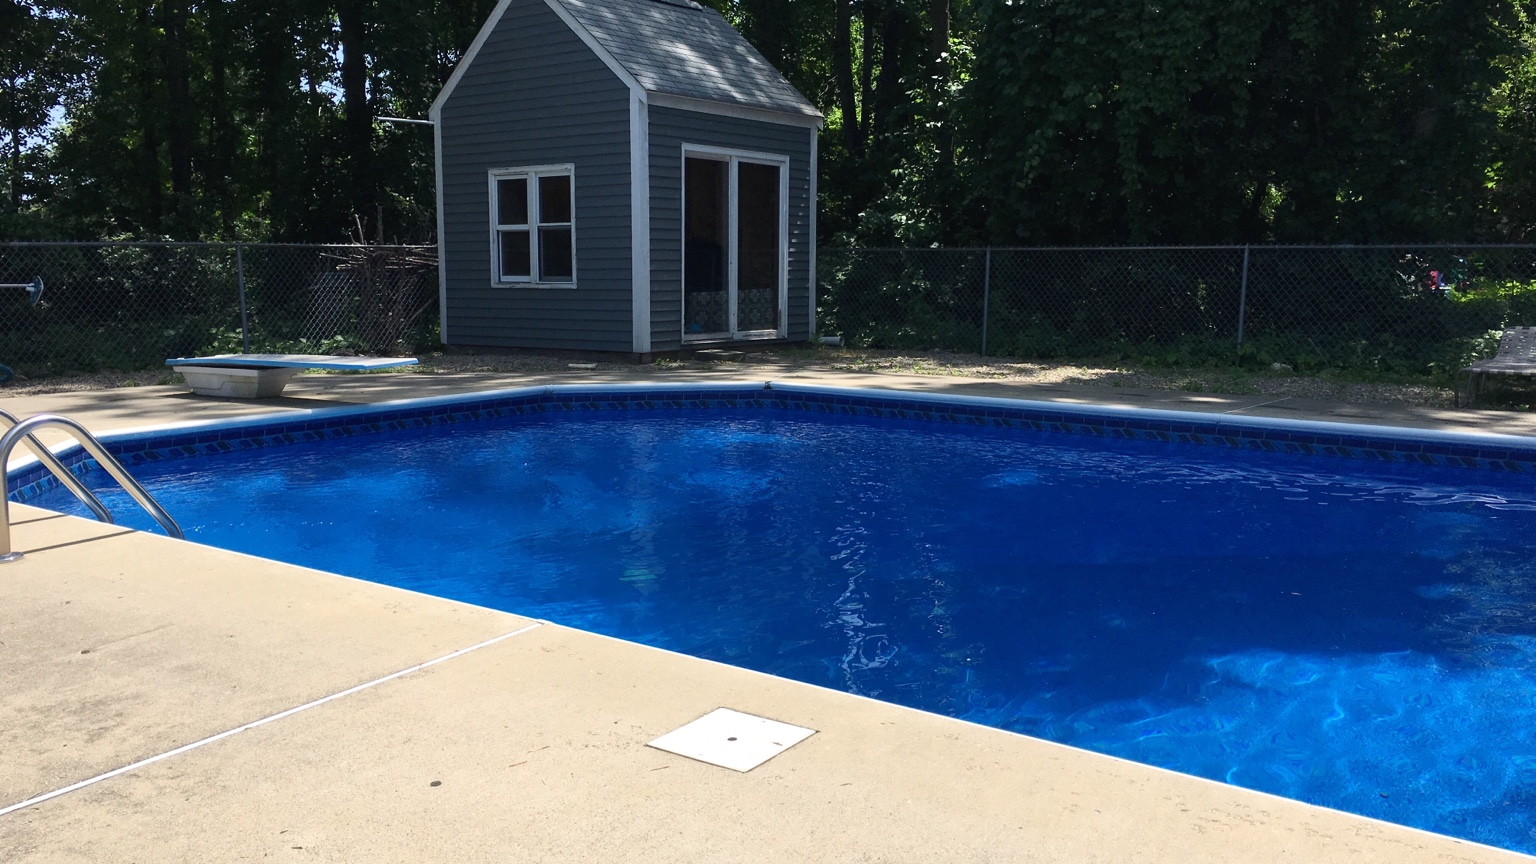 Looking For Pictures Of Pools With Darker Liners